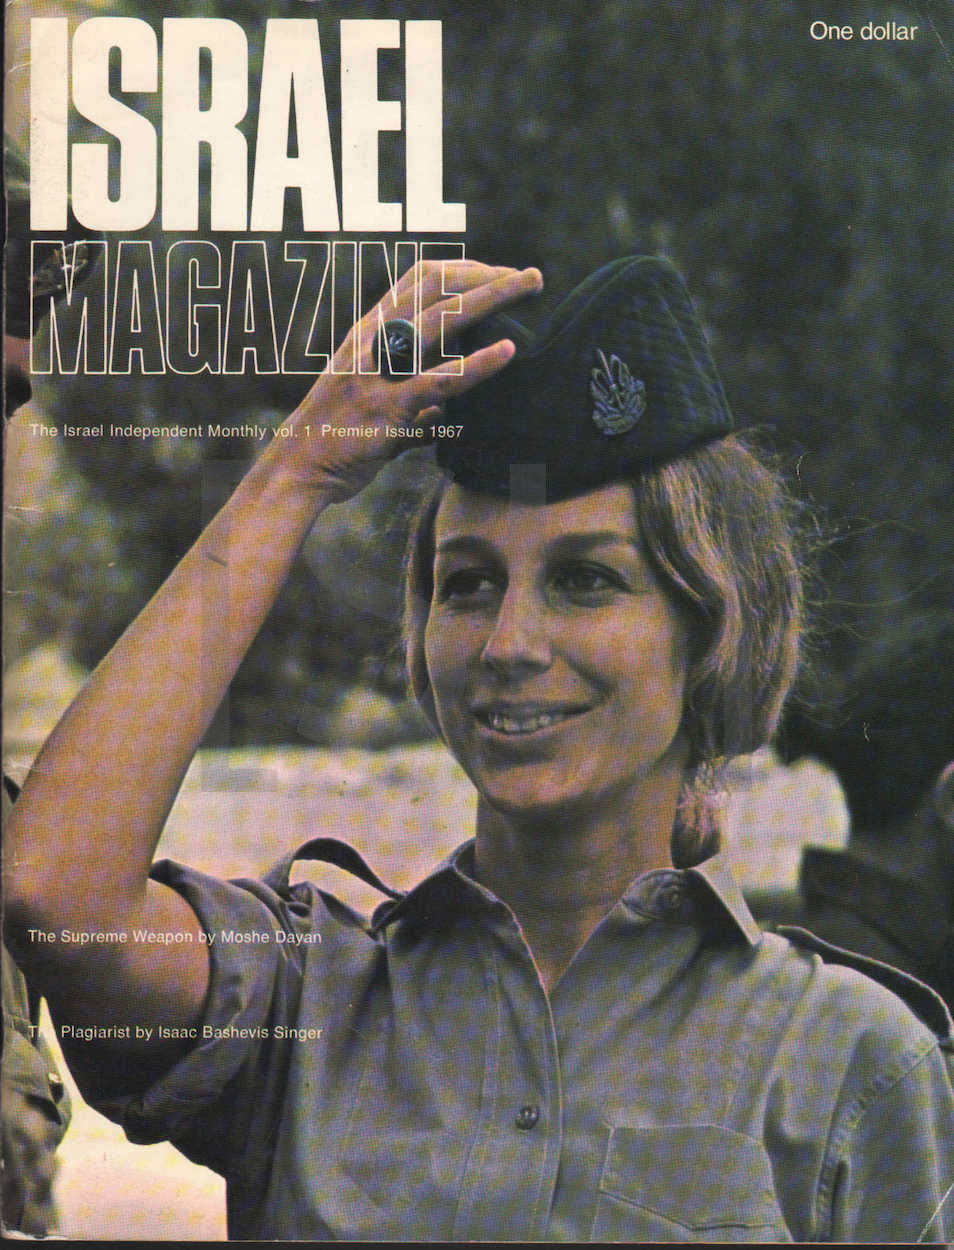 Israel Magazine; The Israel Independent Monthly